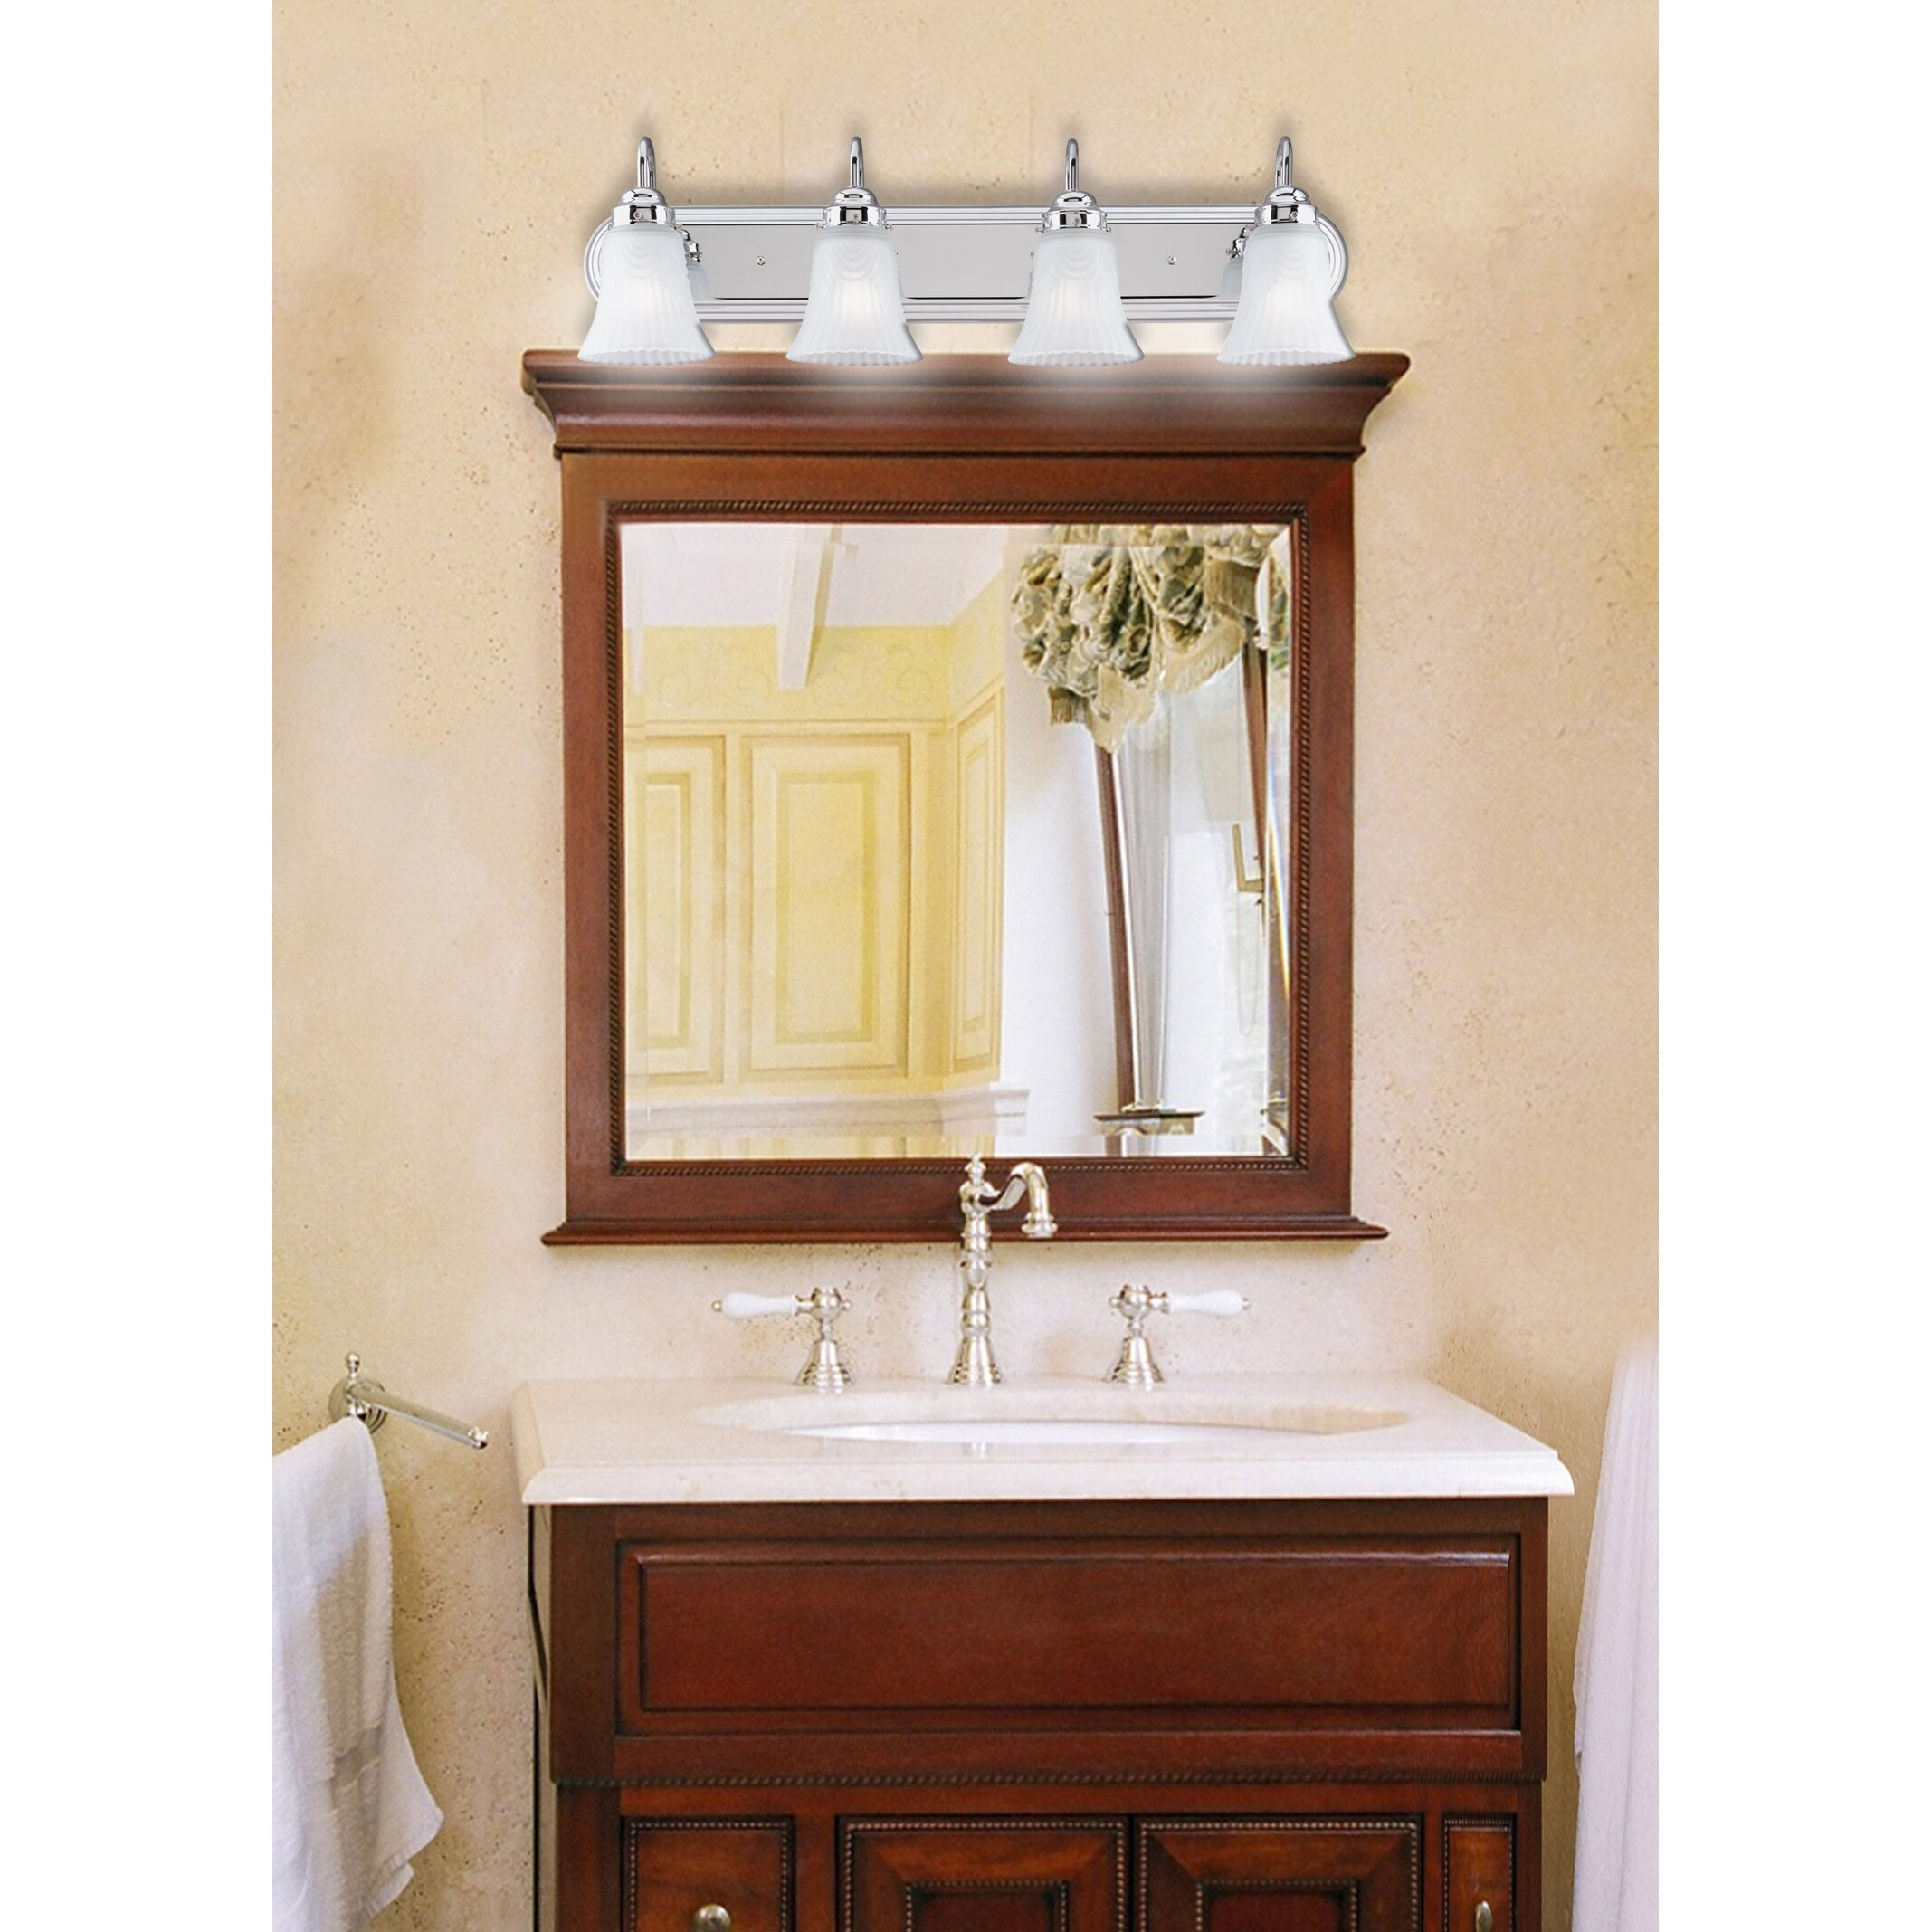 4 light bathroom vanity light wayfair for Bathroom vanity fixtures